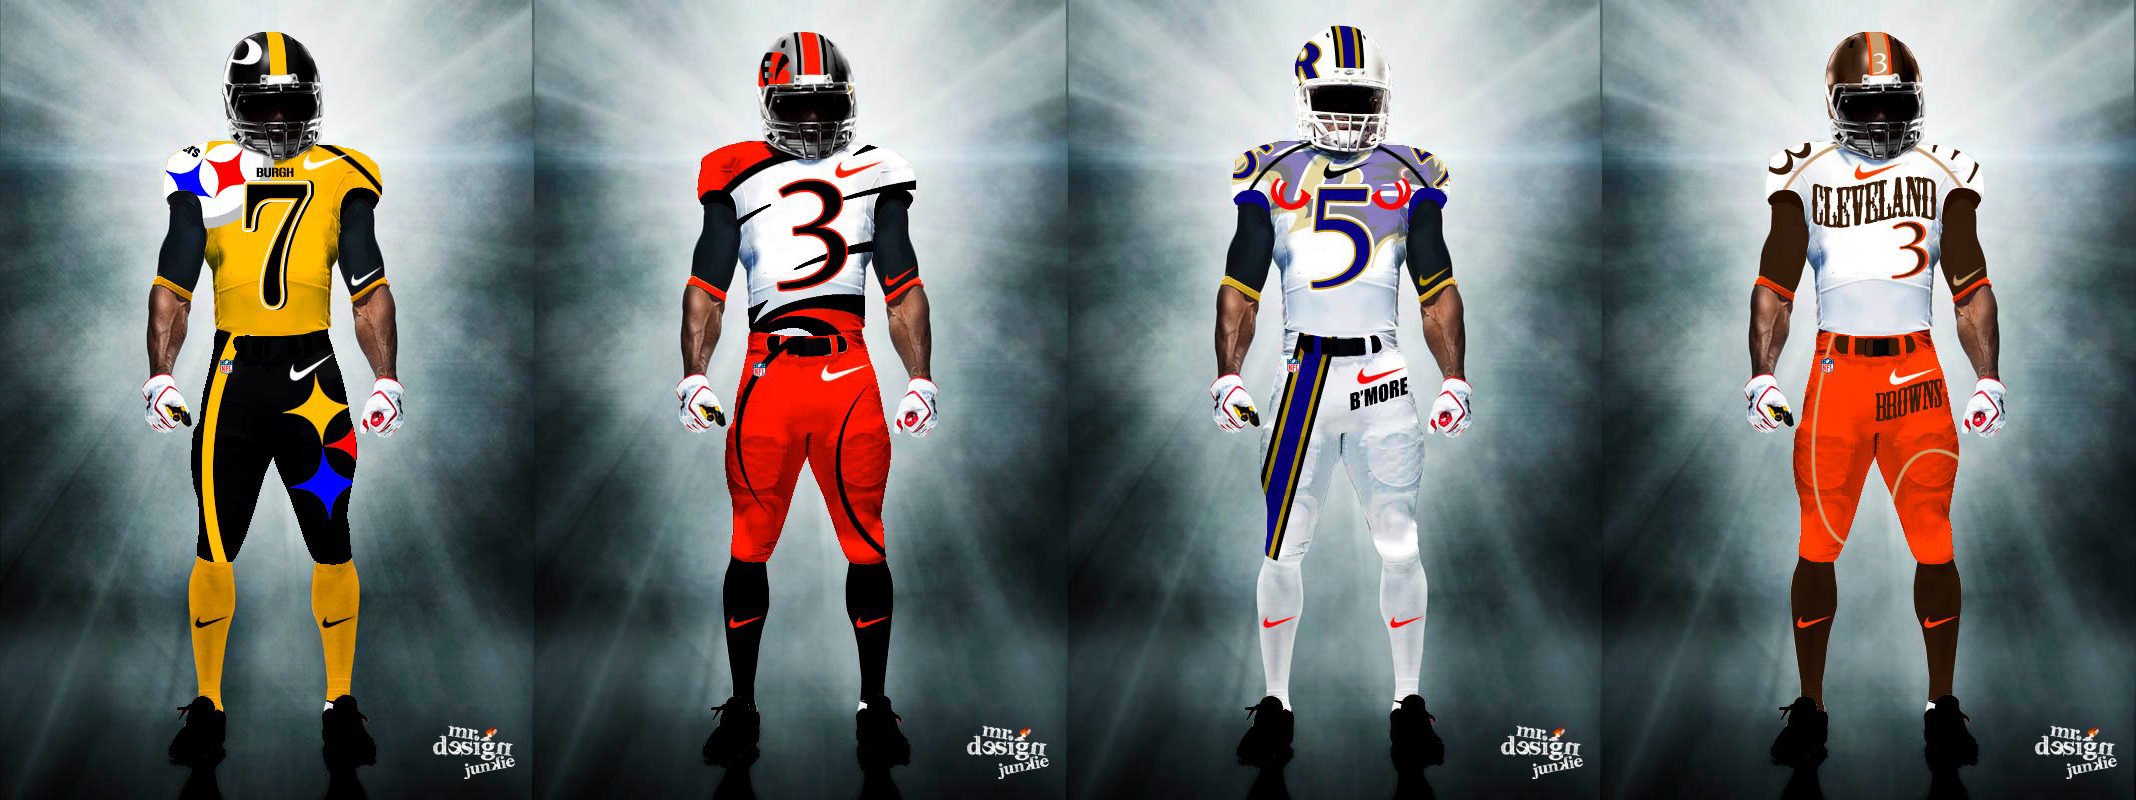 New Nfl Uniforms 2014 Concept nfl uniformsNew Nfl Uniforms